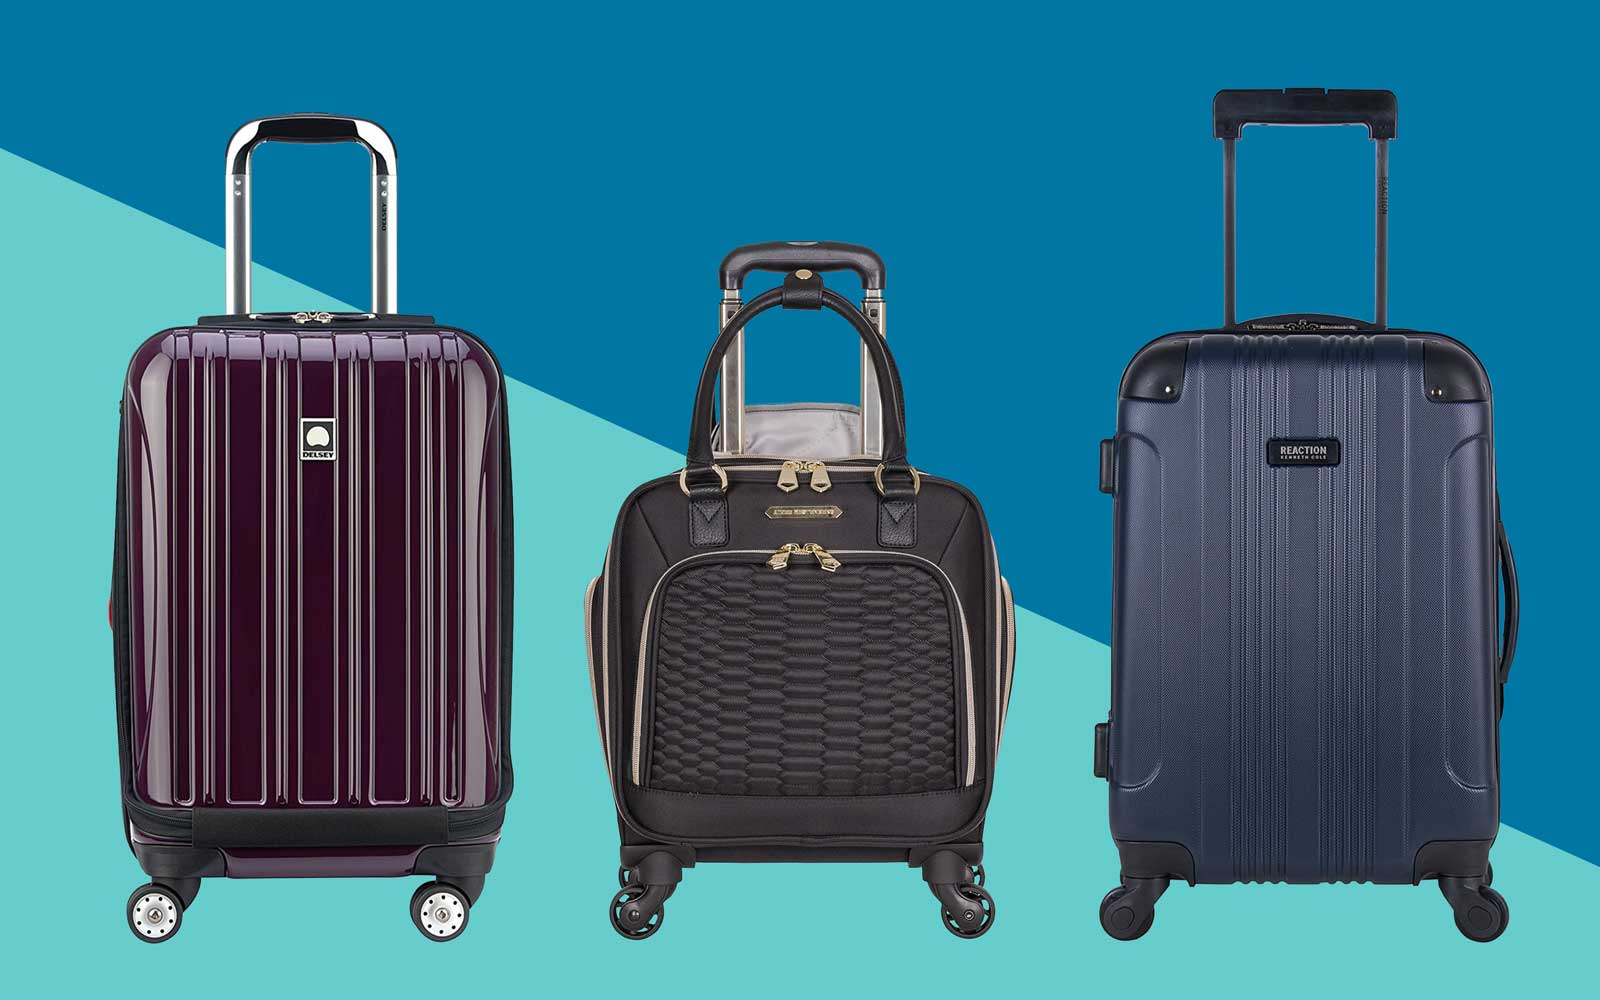 ec271e33d The Best Spinner Luggage You Can Buy in 2019 | Travel + Leisure